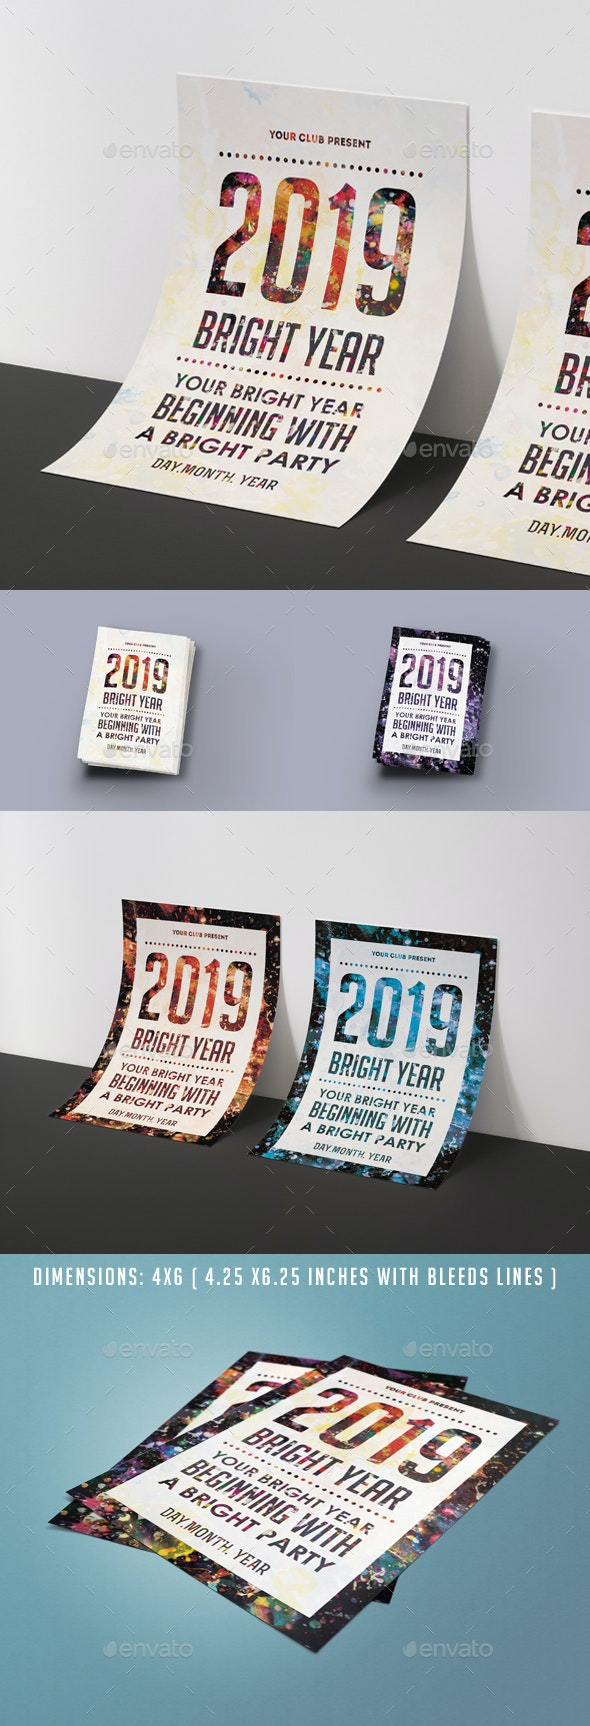 Bright Year Party Poster Flyer Template - Clubs & Parties Events